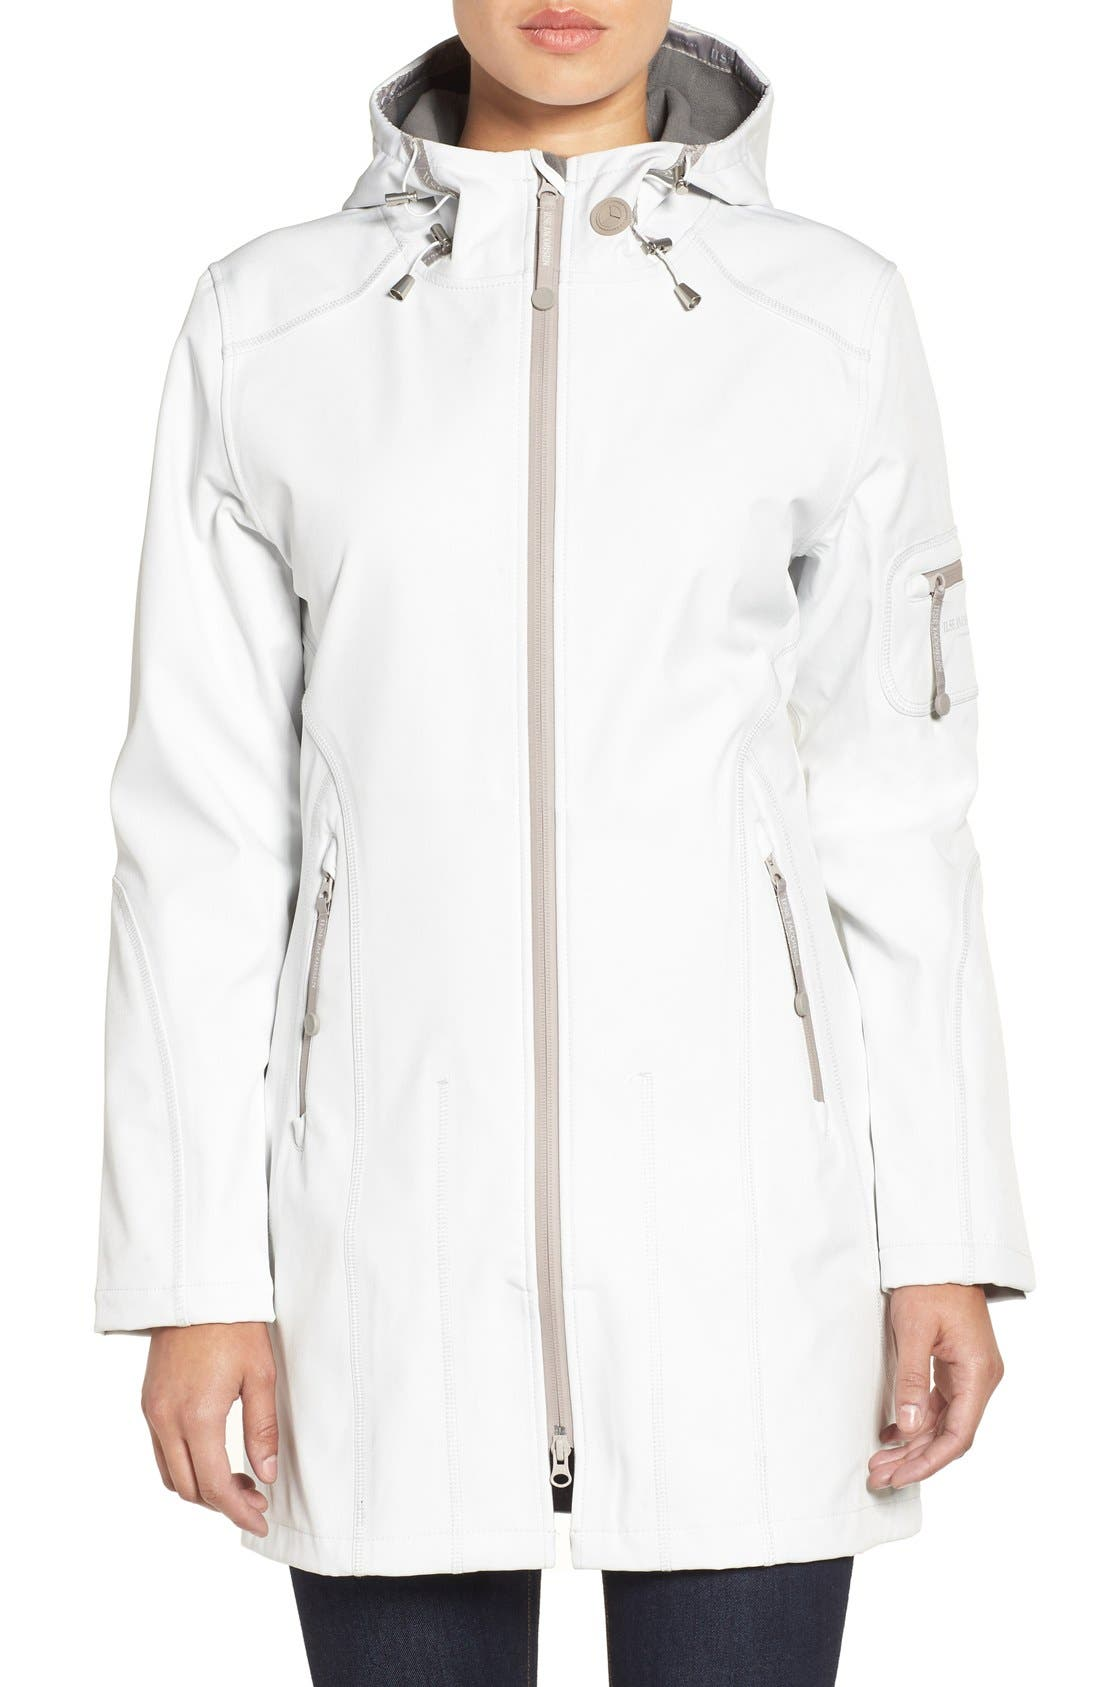 'Rain 7B' Hooded Water Resistant Coat,                             Alternate thumbnail 4, color,                             Creme With Pearl